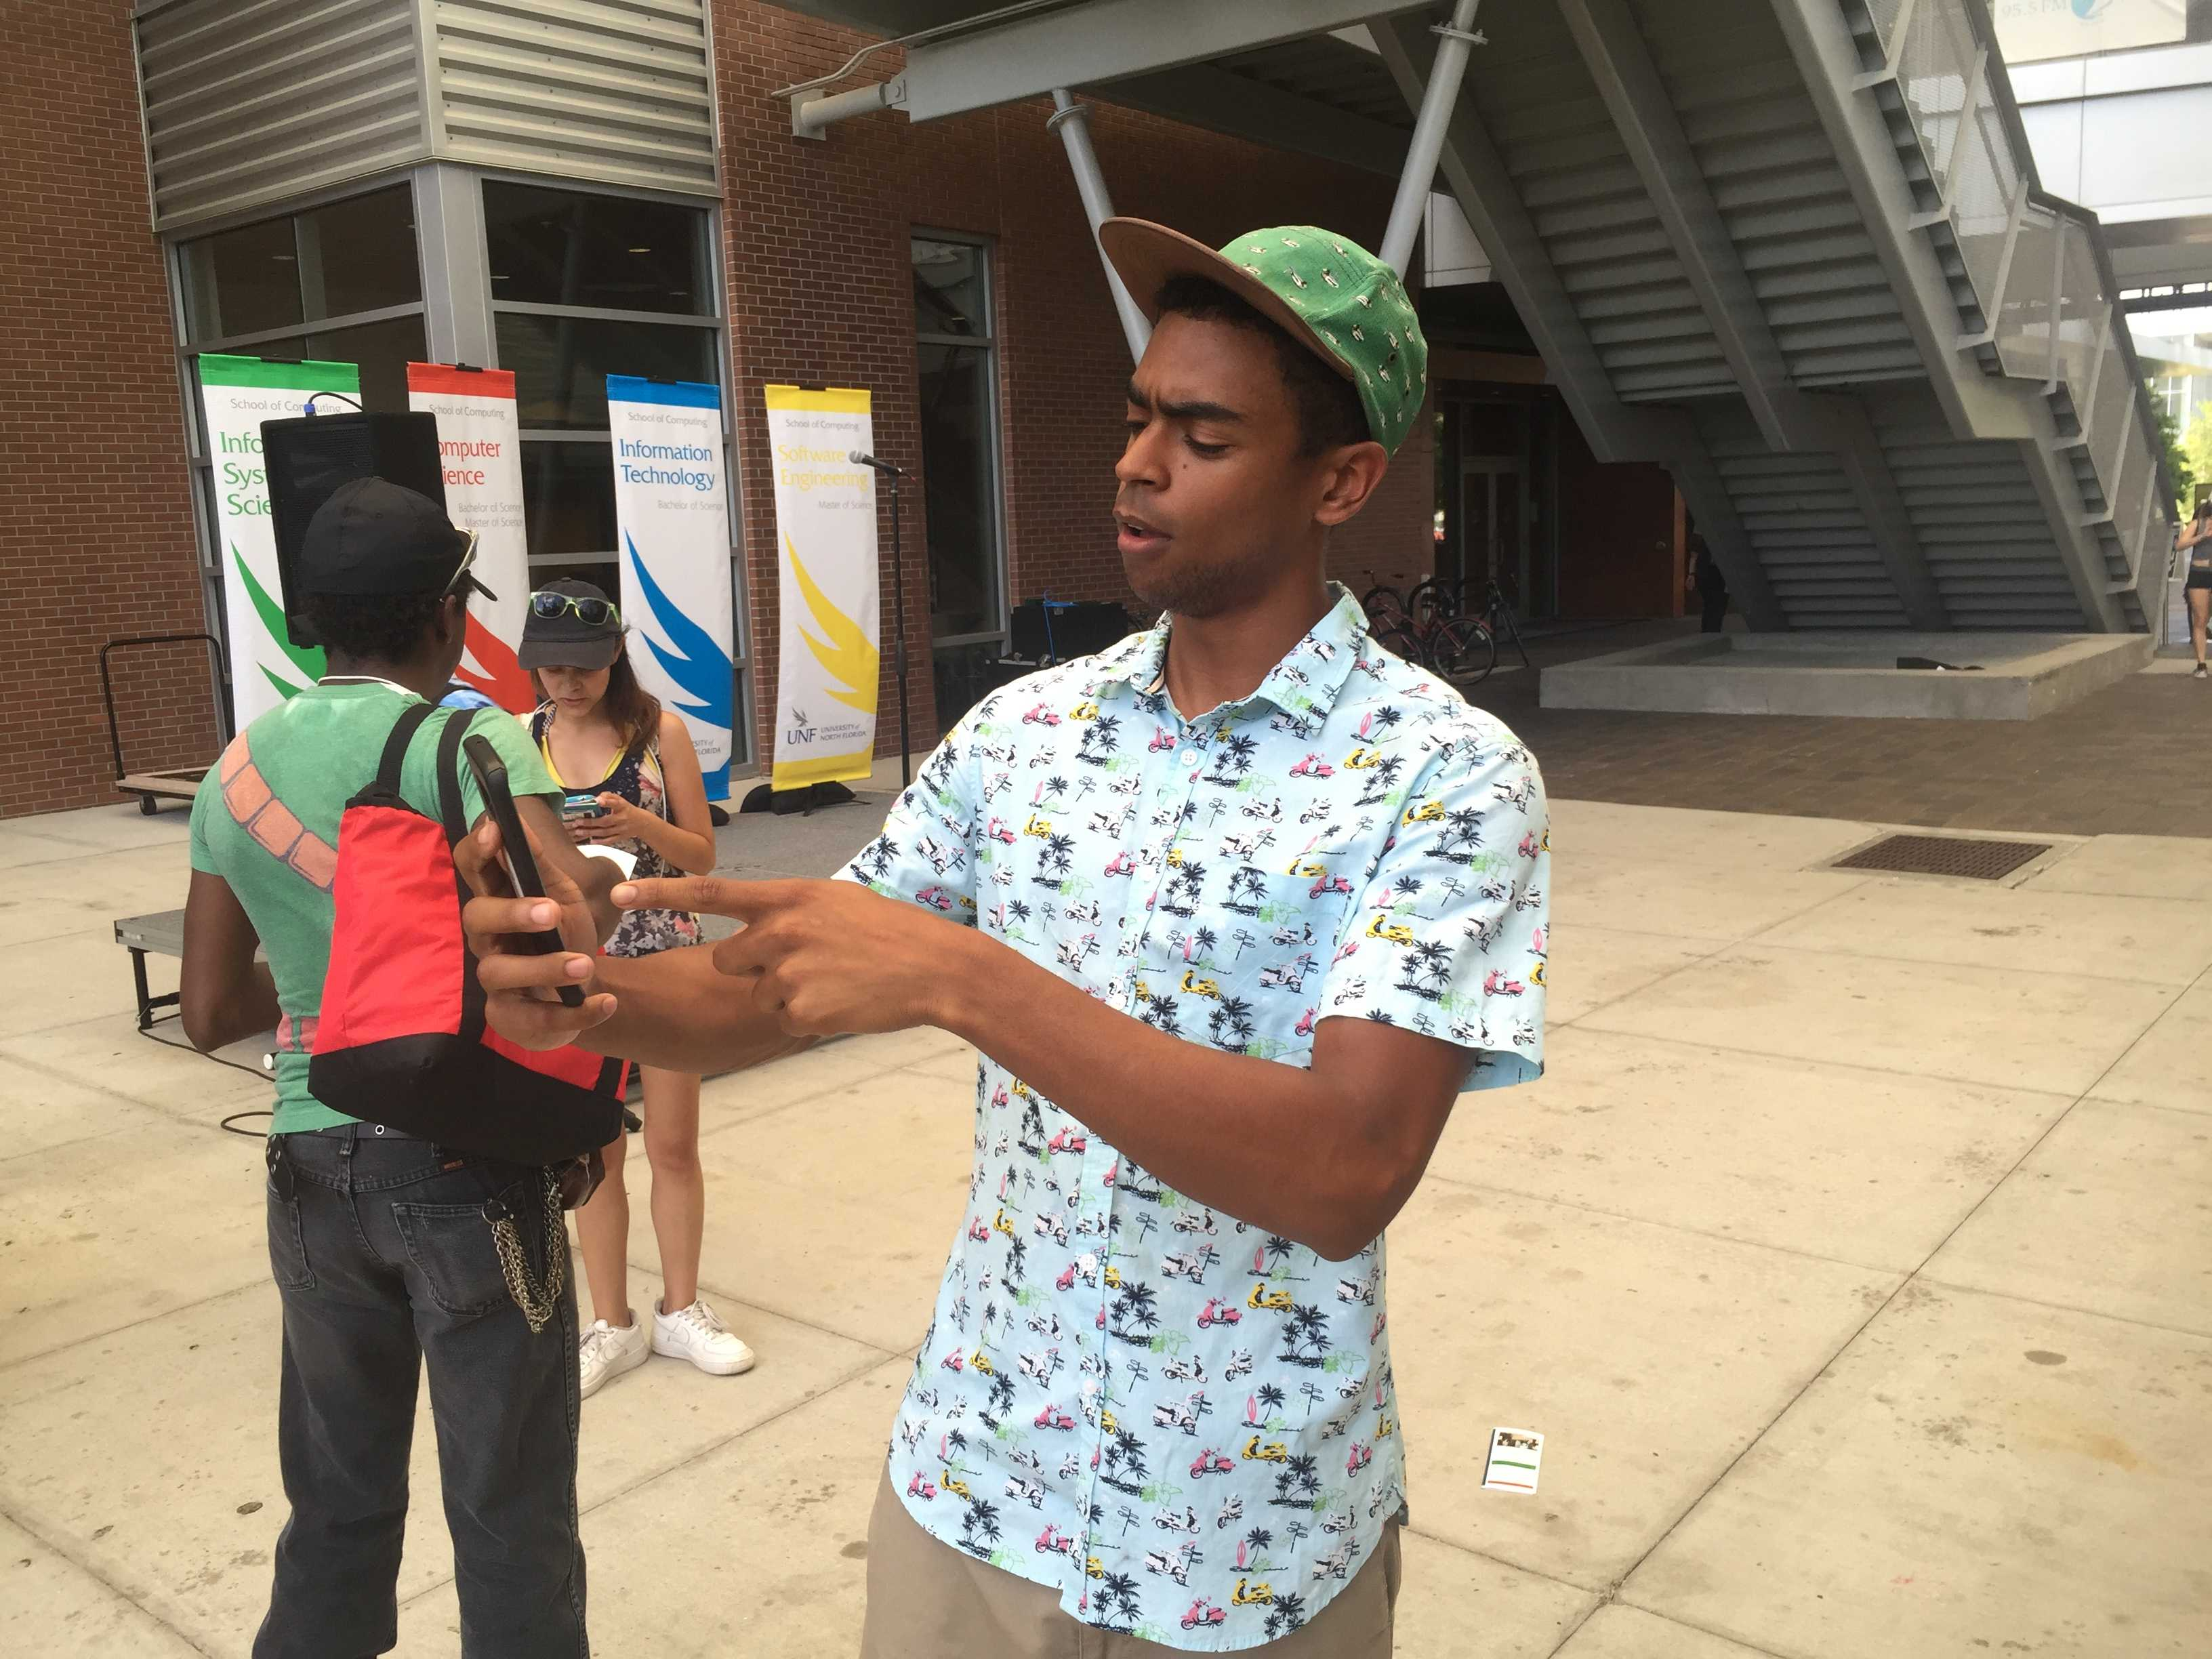 Thousands flock to campus to catch Pokemon